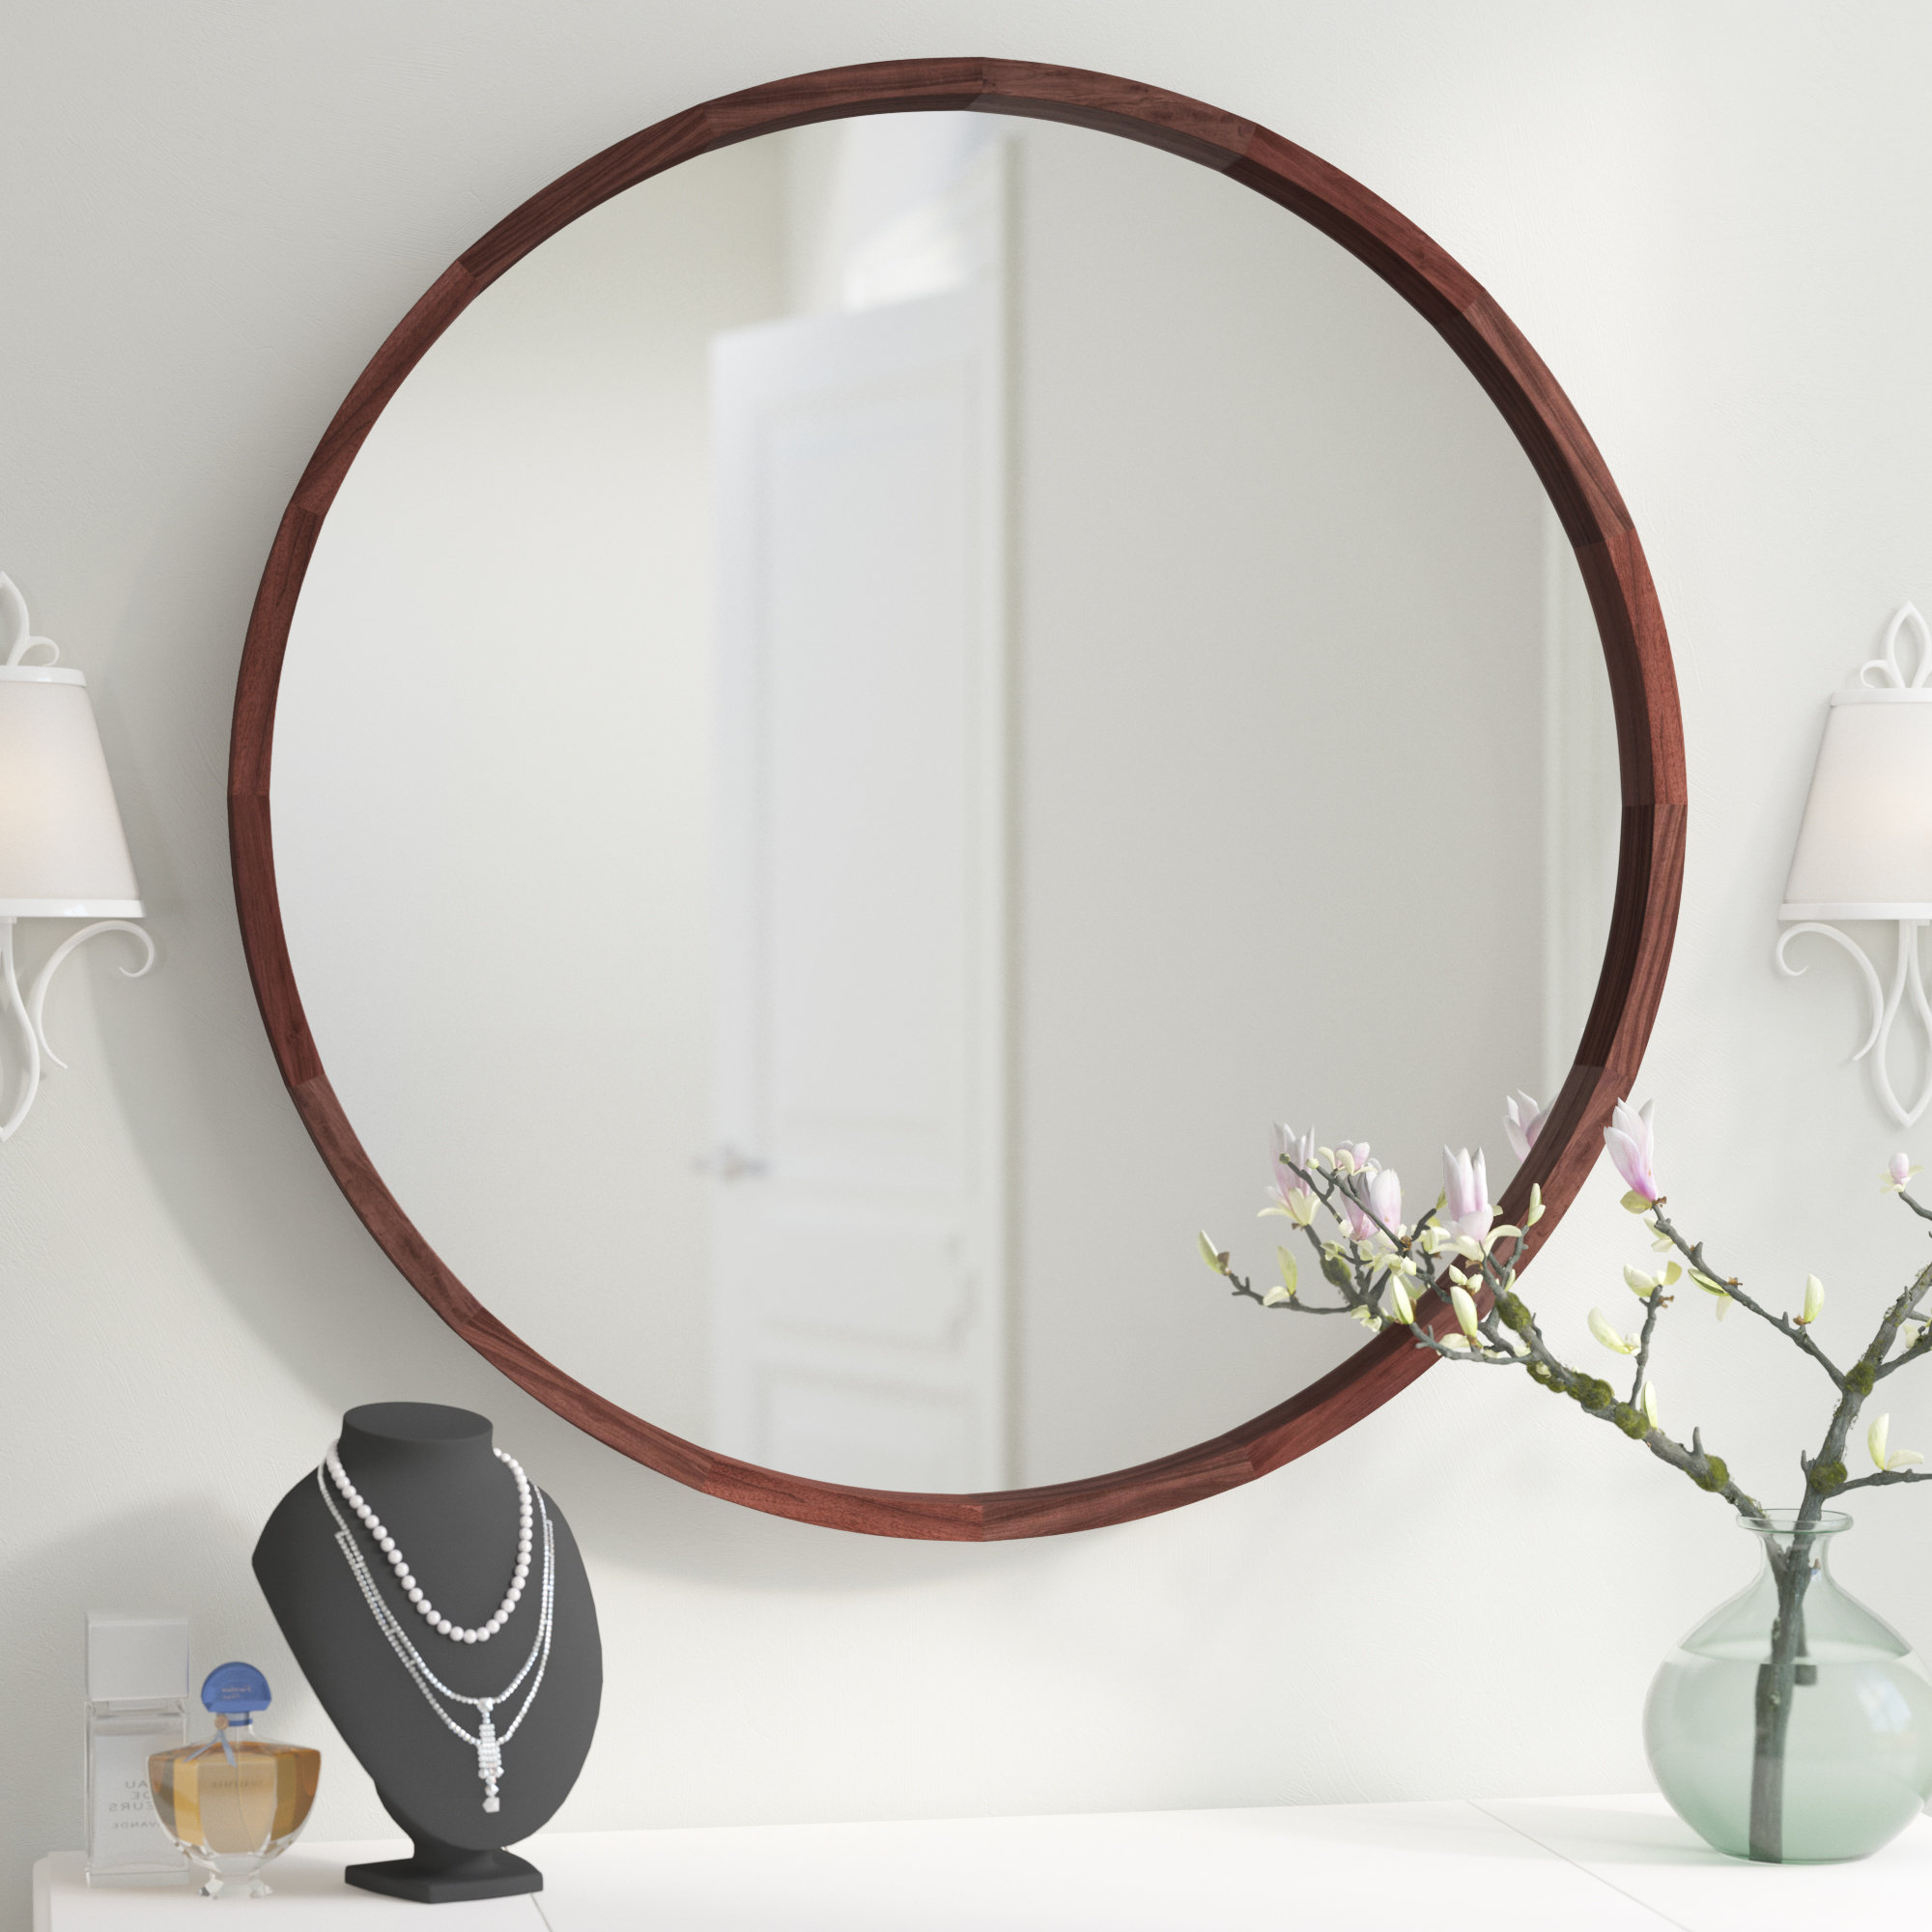 Loftis Modern & Contemporary Accent Wall Mirror With Most Current Standard Wall Mirrors (View 14 of 20)